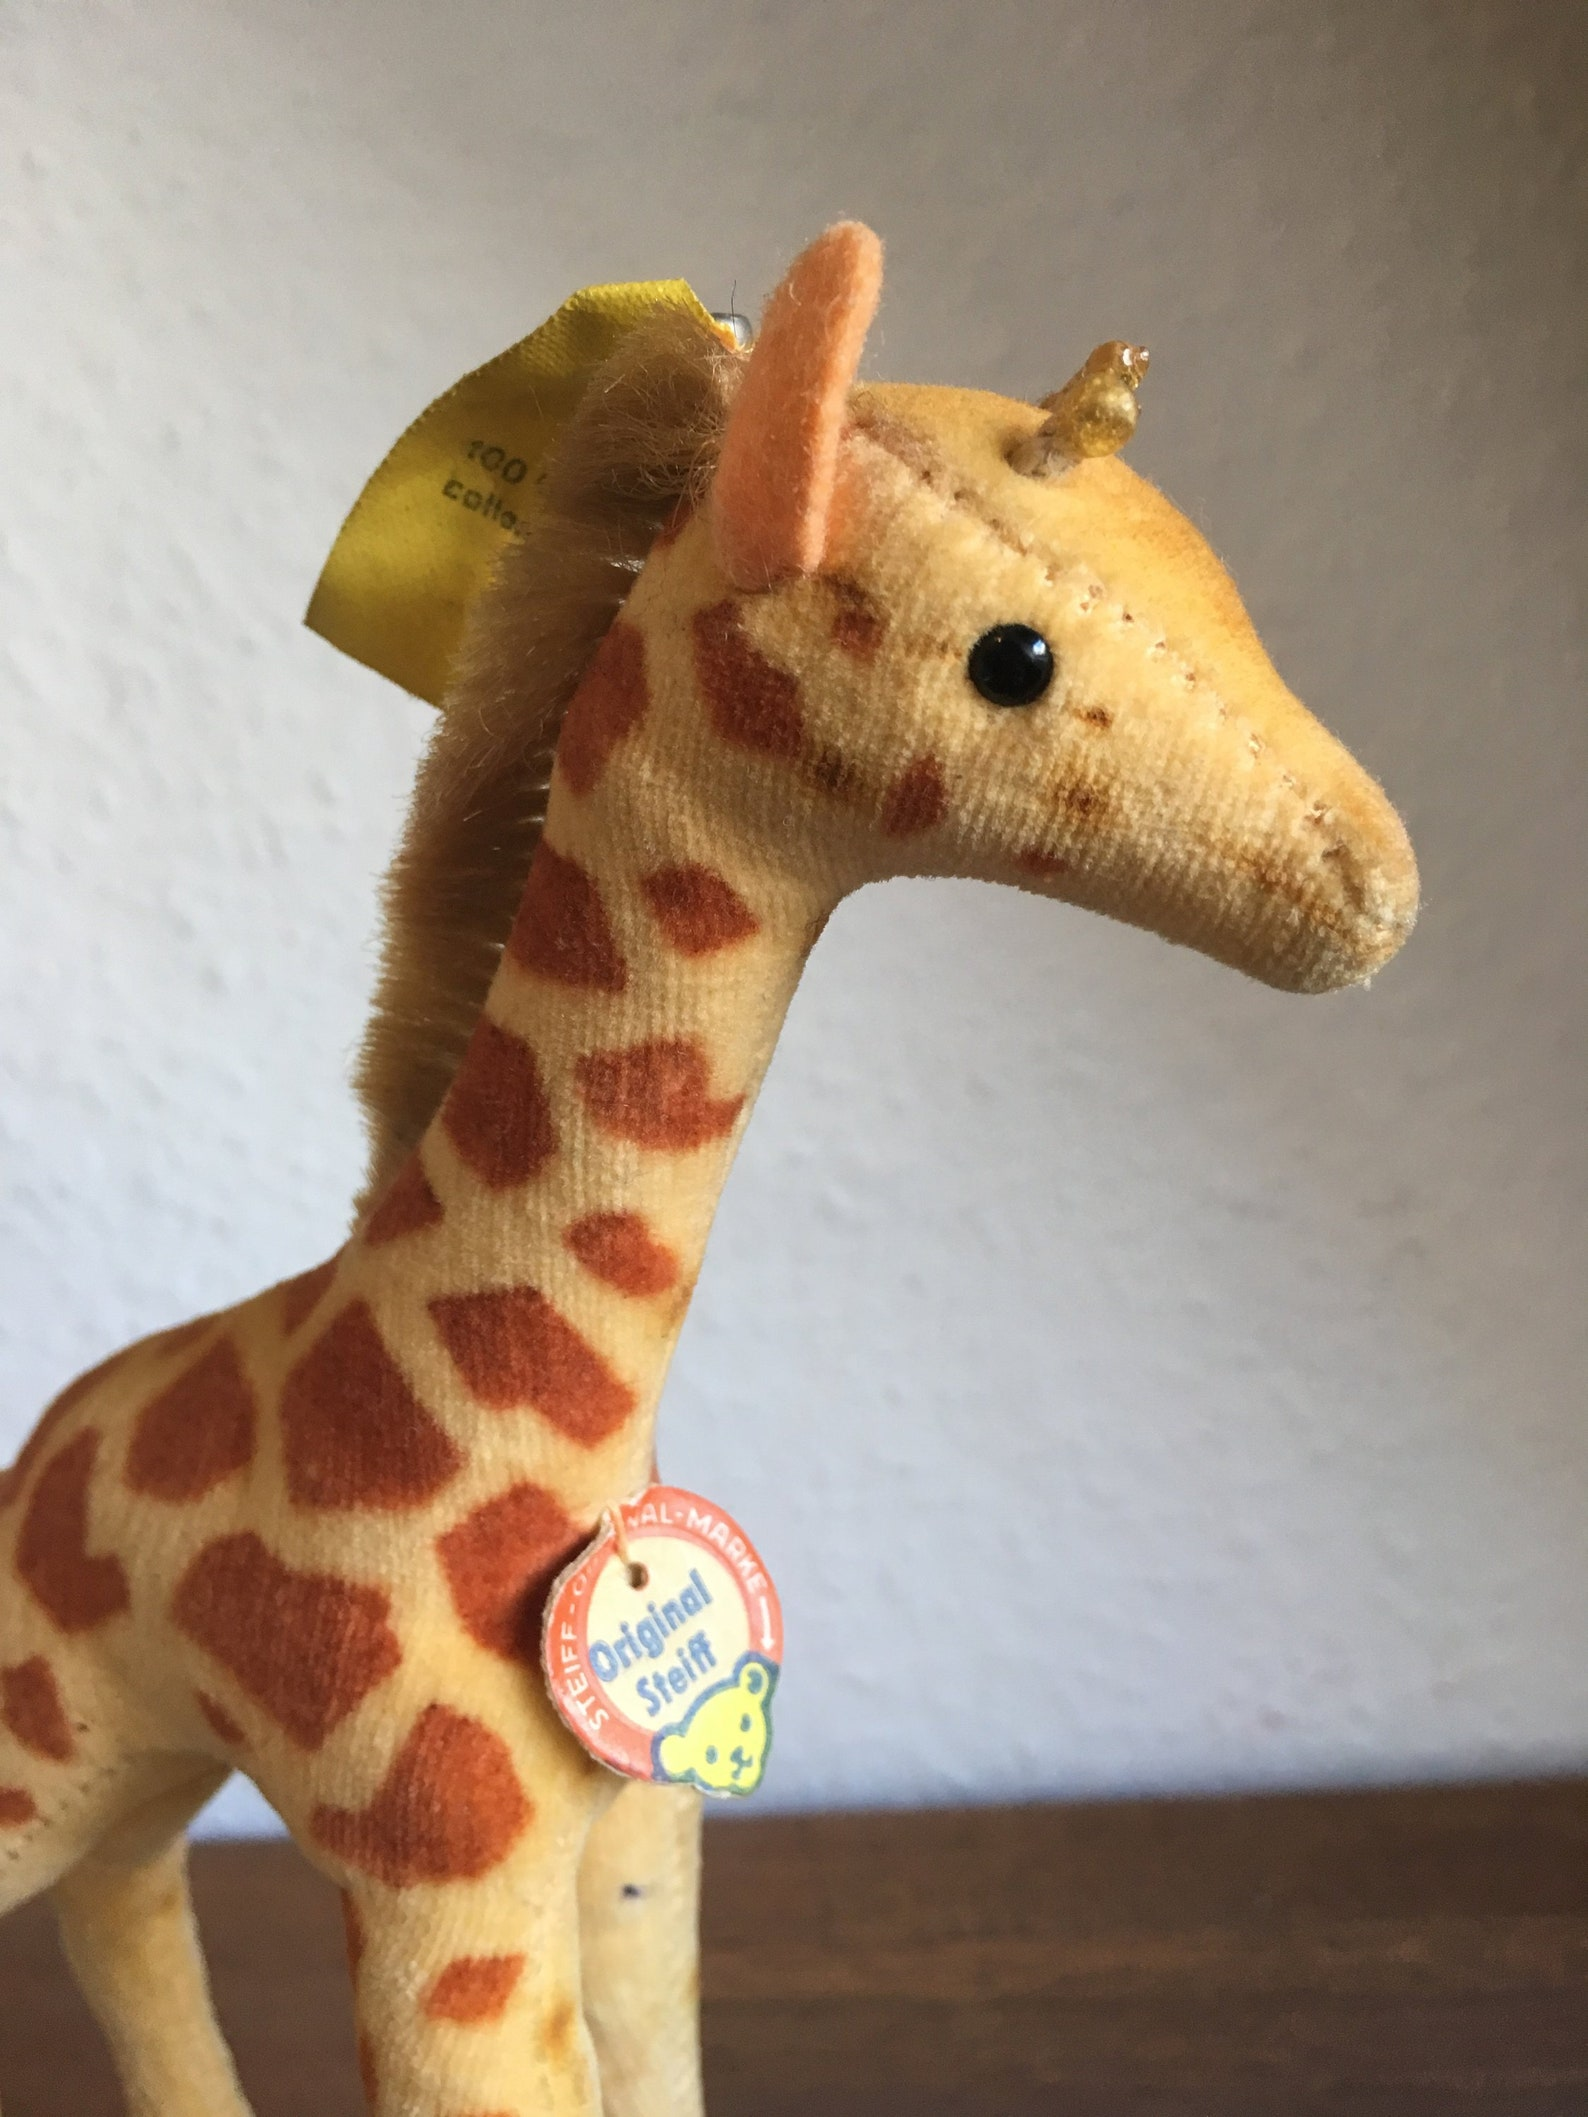 Very Rare! All Ids 60s Vintage Steiff Velvet Giraffe antique soft toy, button in ear, gift for collectors